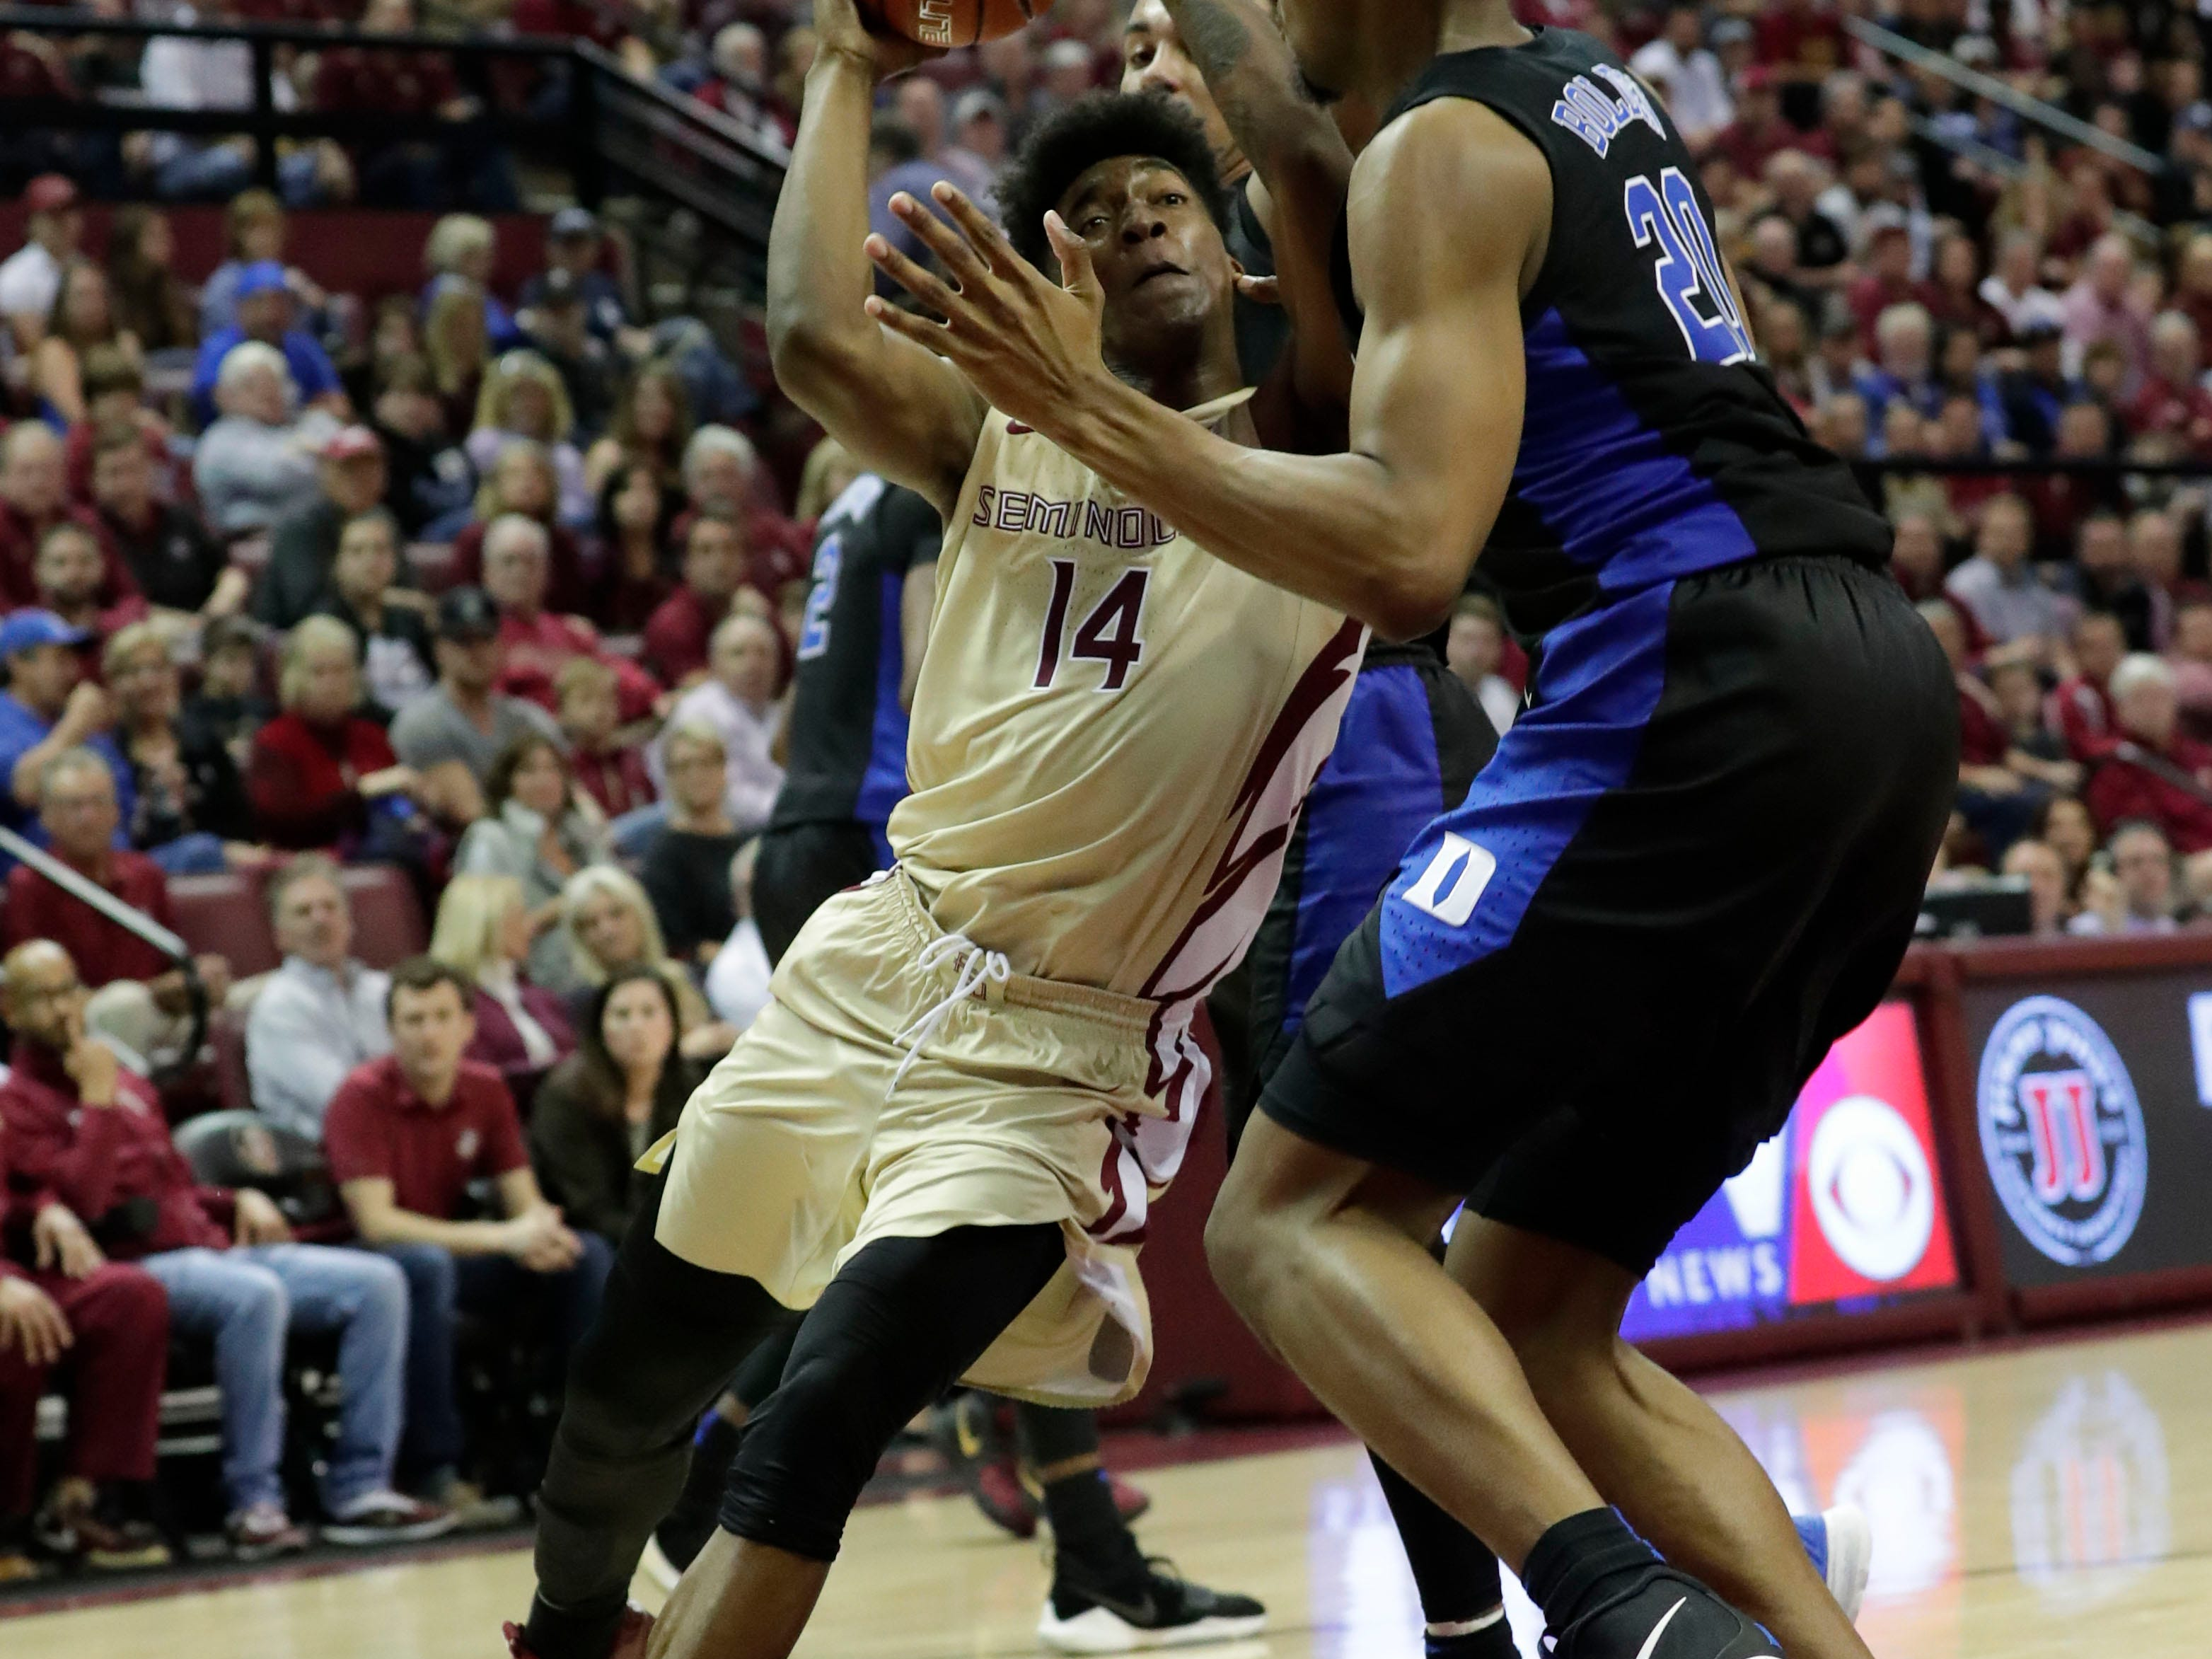 Florida State Seminoles guard Terance Mann (14) drives the ball in for a layup. Ranked 13 in the ACC, the Florida State Seminoles host the number 1 team, the Duke Blue Devils, at the Tucker Civic Center, Saturday, Jan. 12, 2019.